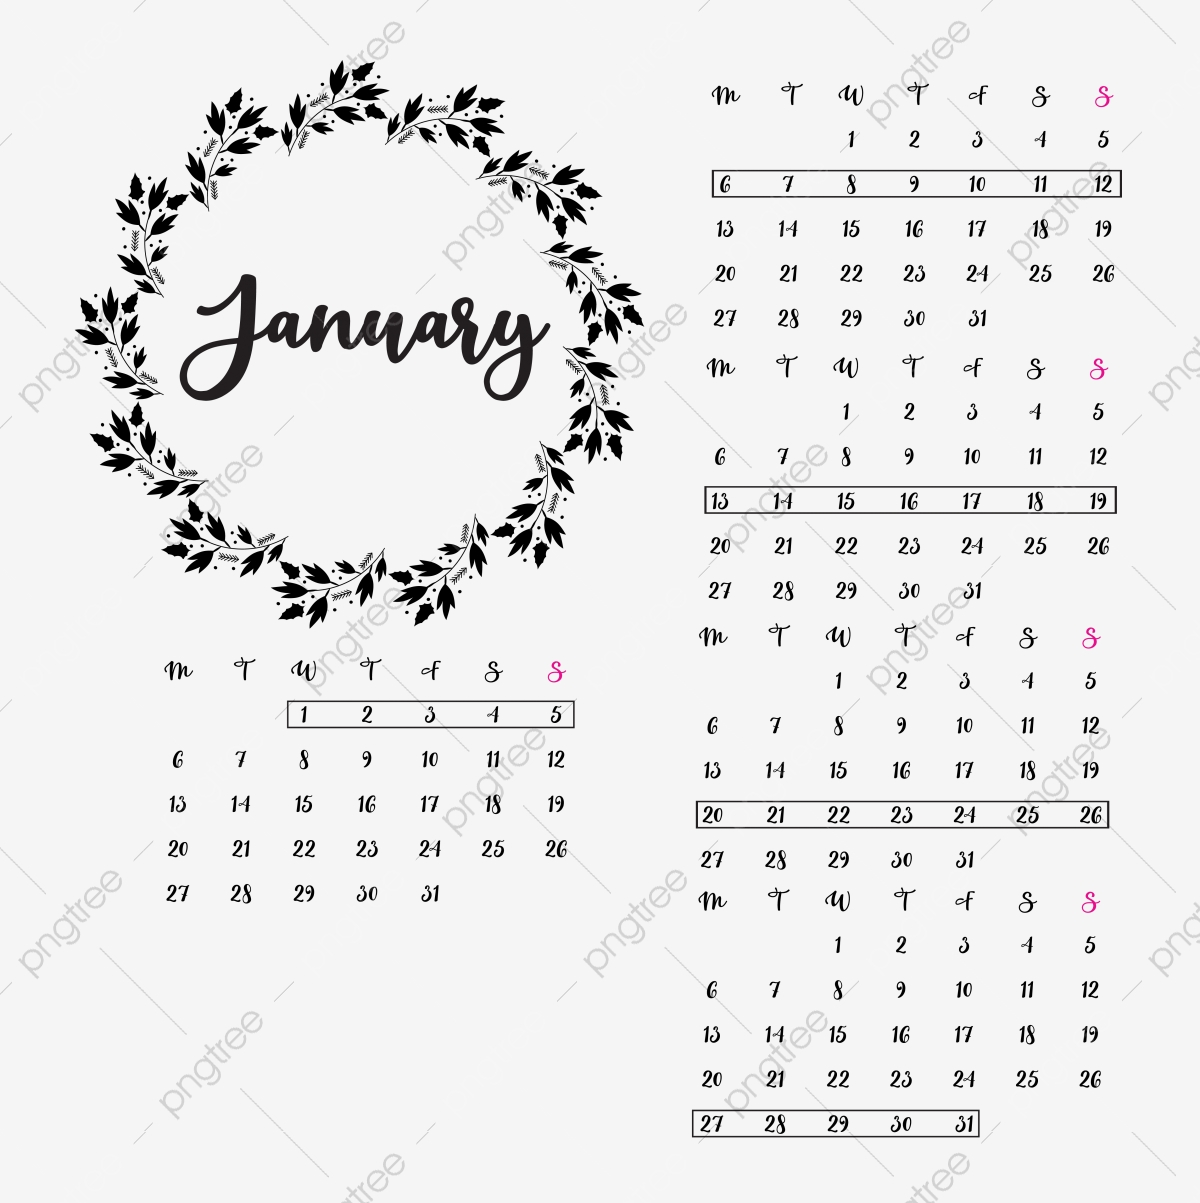 Colorful Planner Calendar January 2019 Separately Vector Illustration  Royalty Free Cliparts, Vectors, And Stock Illustration. Image 97613208.